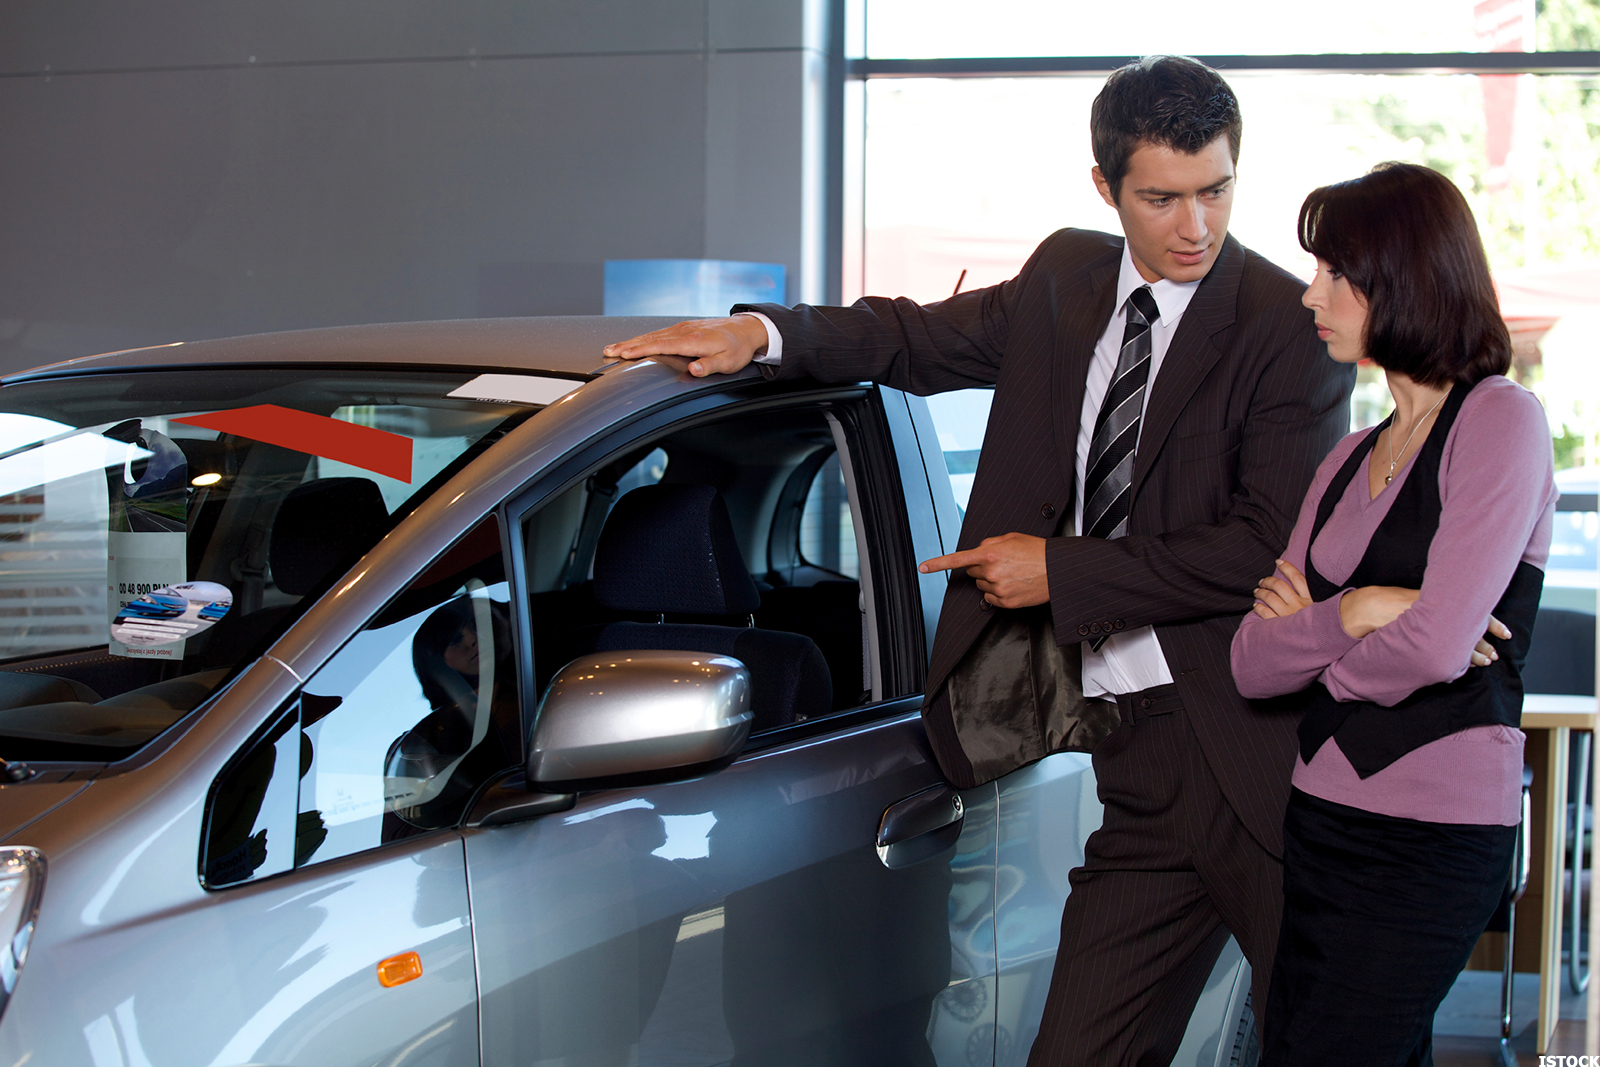 the car salesman James butler, the individual in the car salesman resume example provided below, has an associate's degree in business administration and some previous experience in a retail outlet to help him impress.